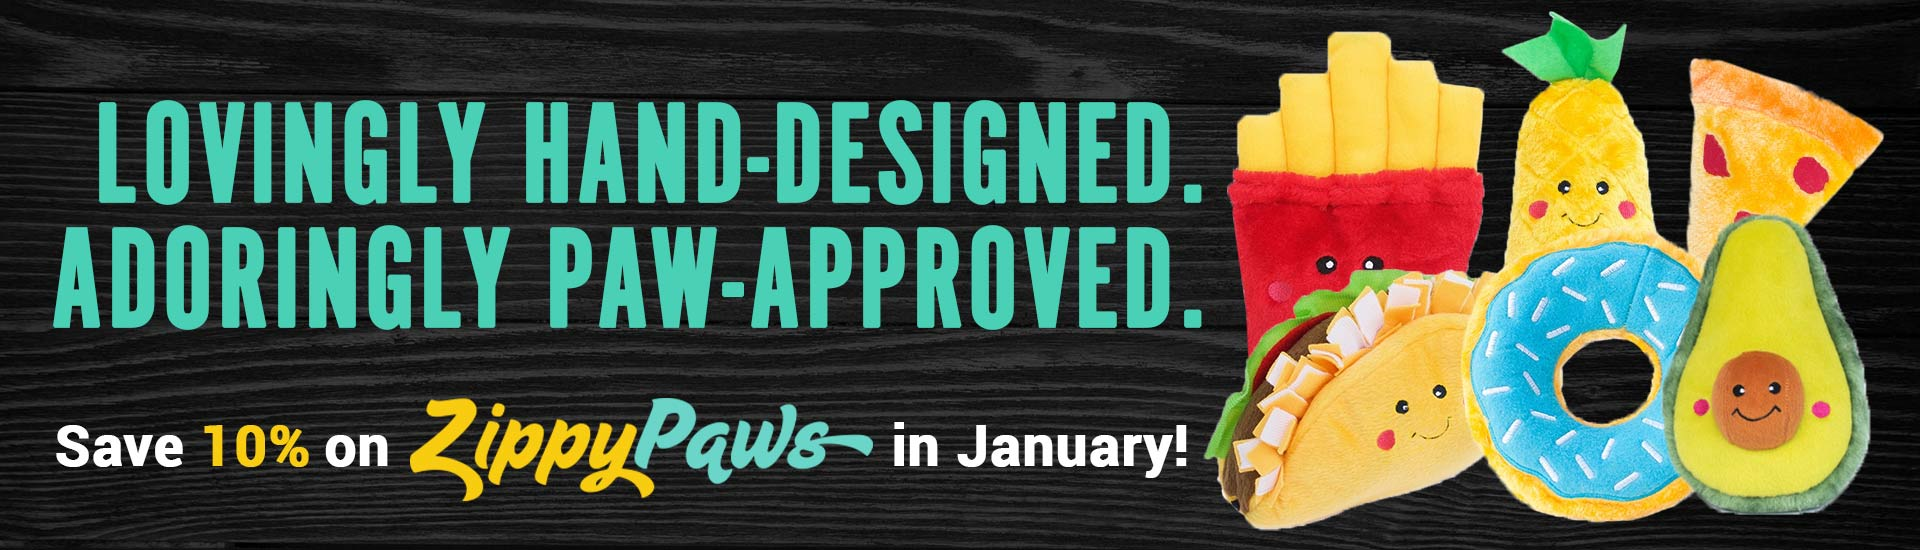 Lovingly hand-designed. Adoringly paw-approved.